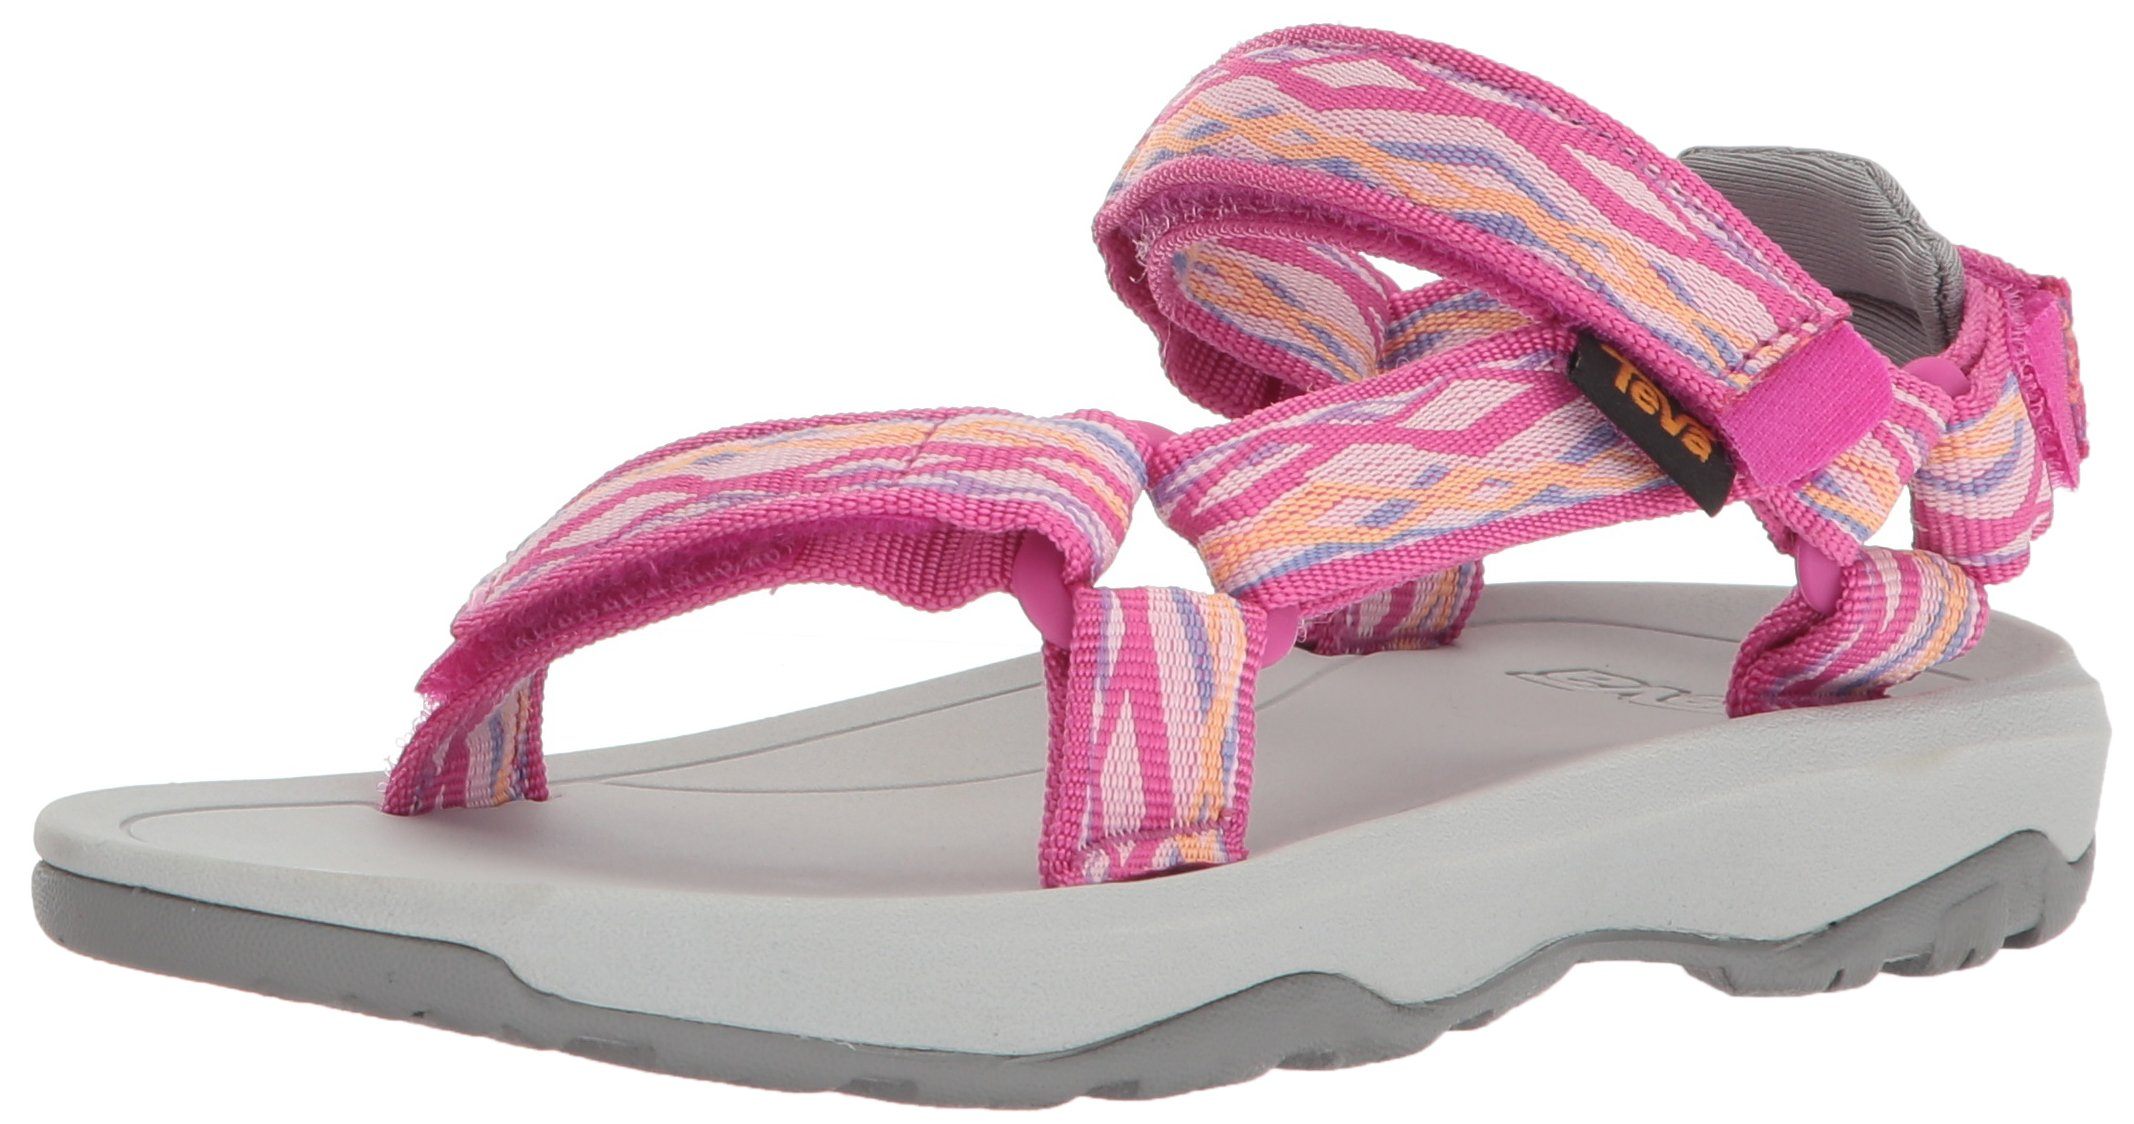 Teva Girls' K Hurricane XLT 2 Sport Sandal, Delmar Pink, 1 M US Little Kid